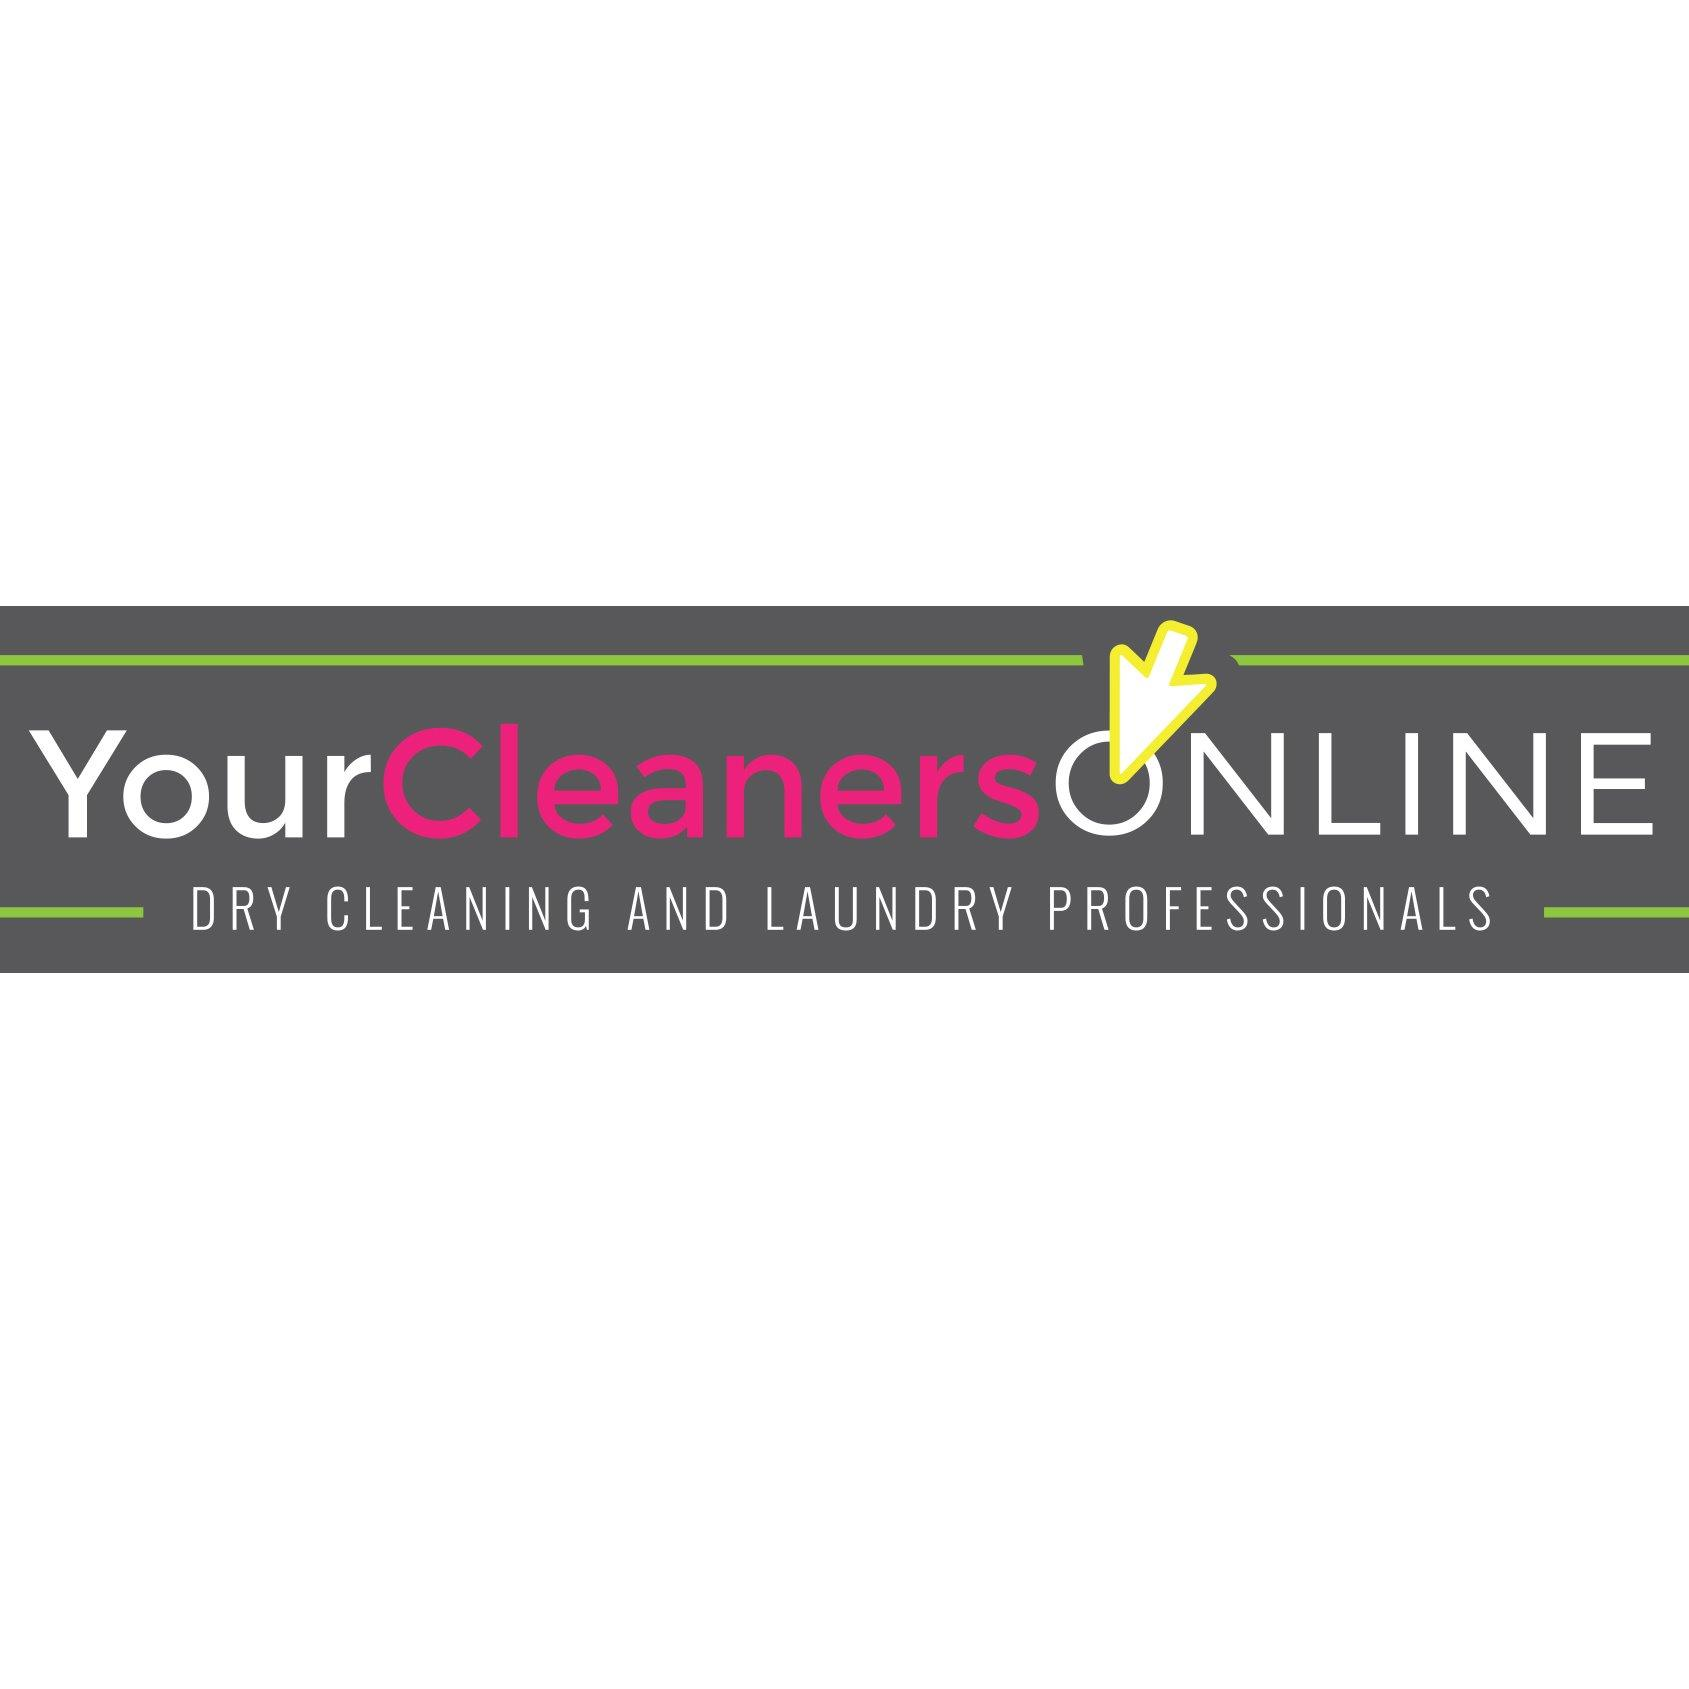 Your Cleaners Online